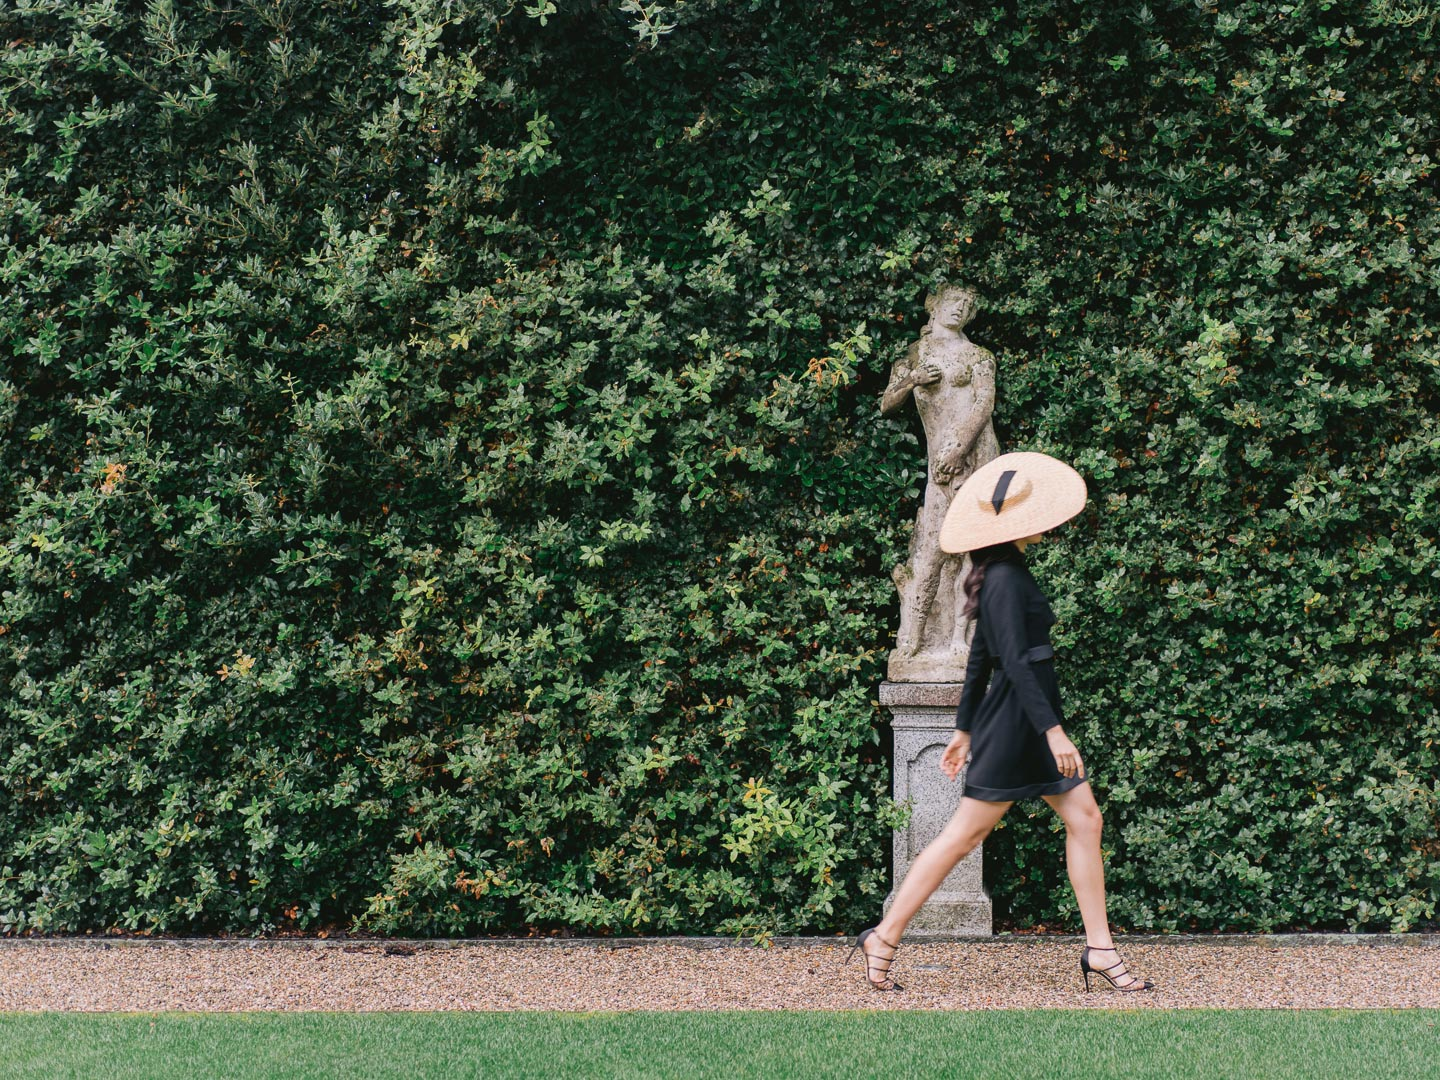 villa balbiano fashion inspiration editorial bella belle shoes campaign styled shoot location lake como